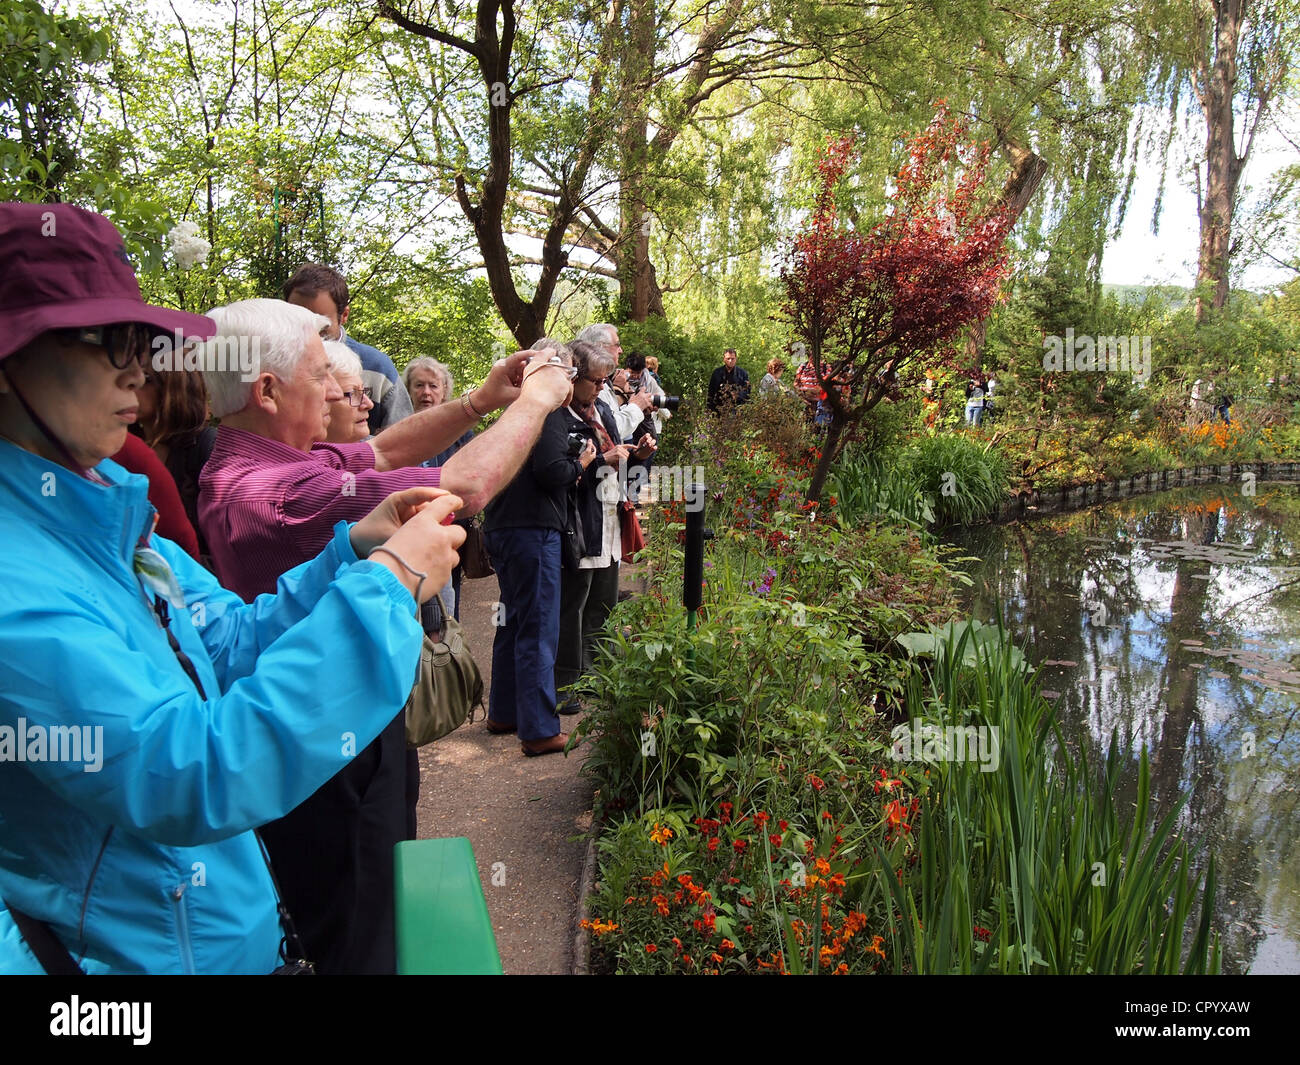 Tourists photographing at le jardin de claude monet giverny france stock photo 48556561 alamy - Livre le jardin de monet ...